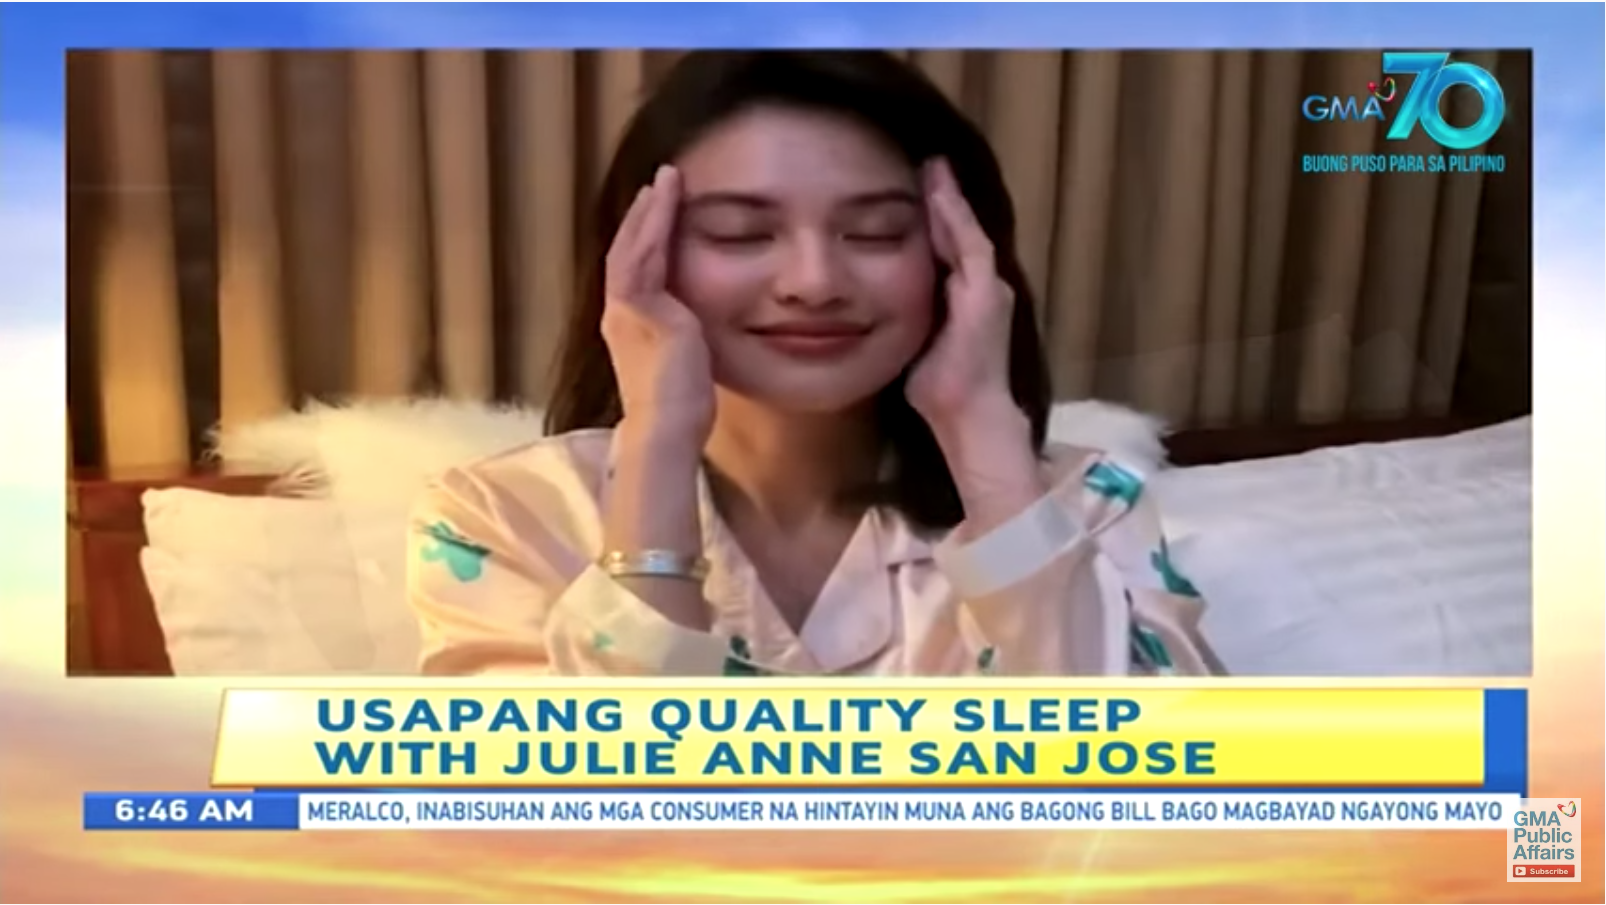 Want to achieve quality sleep? Here are 3 tips to help you do it